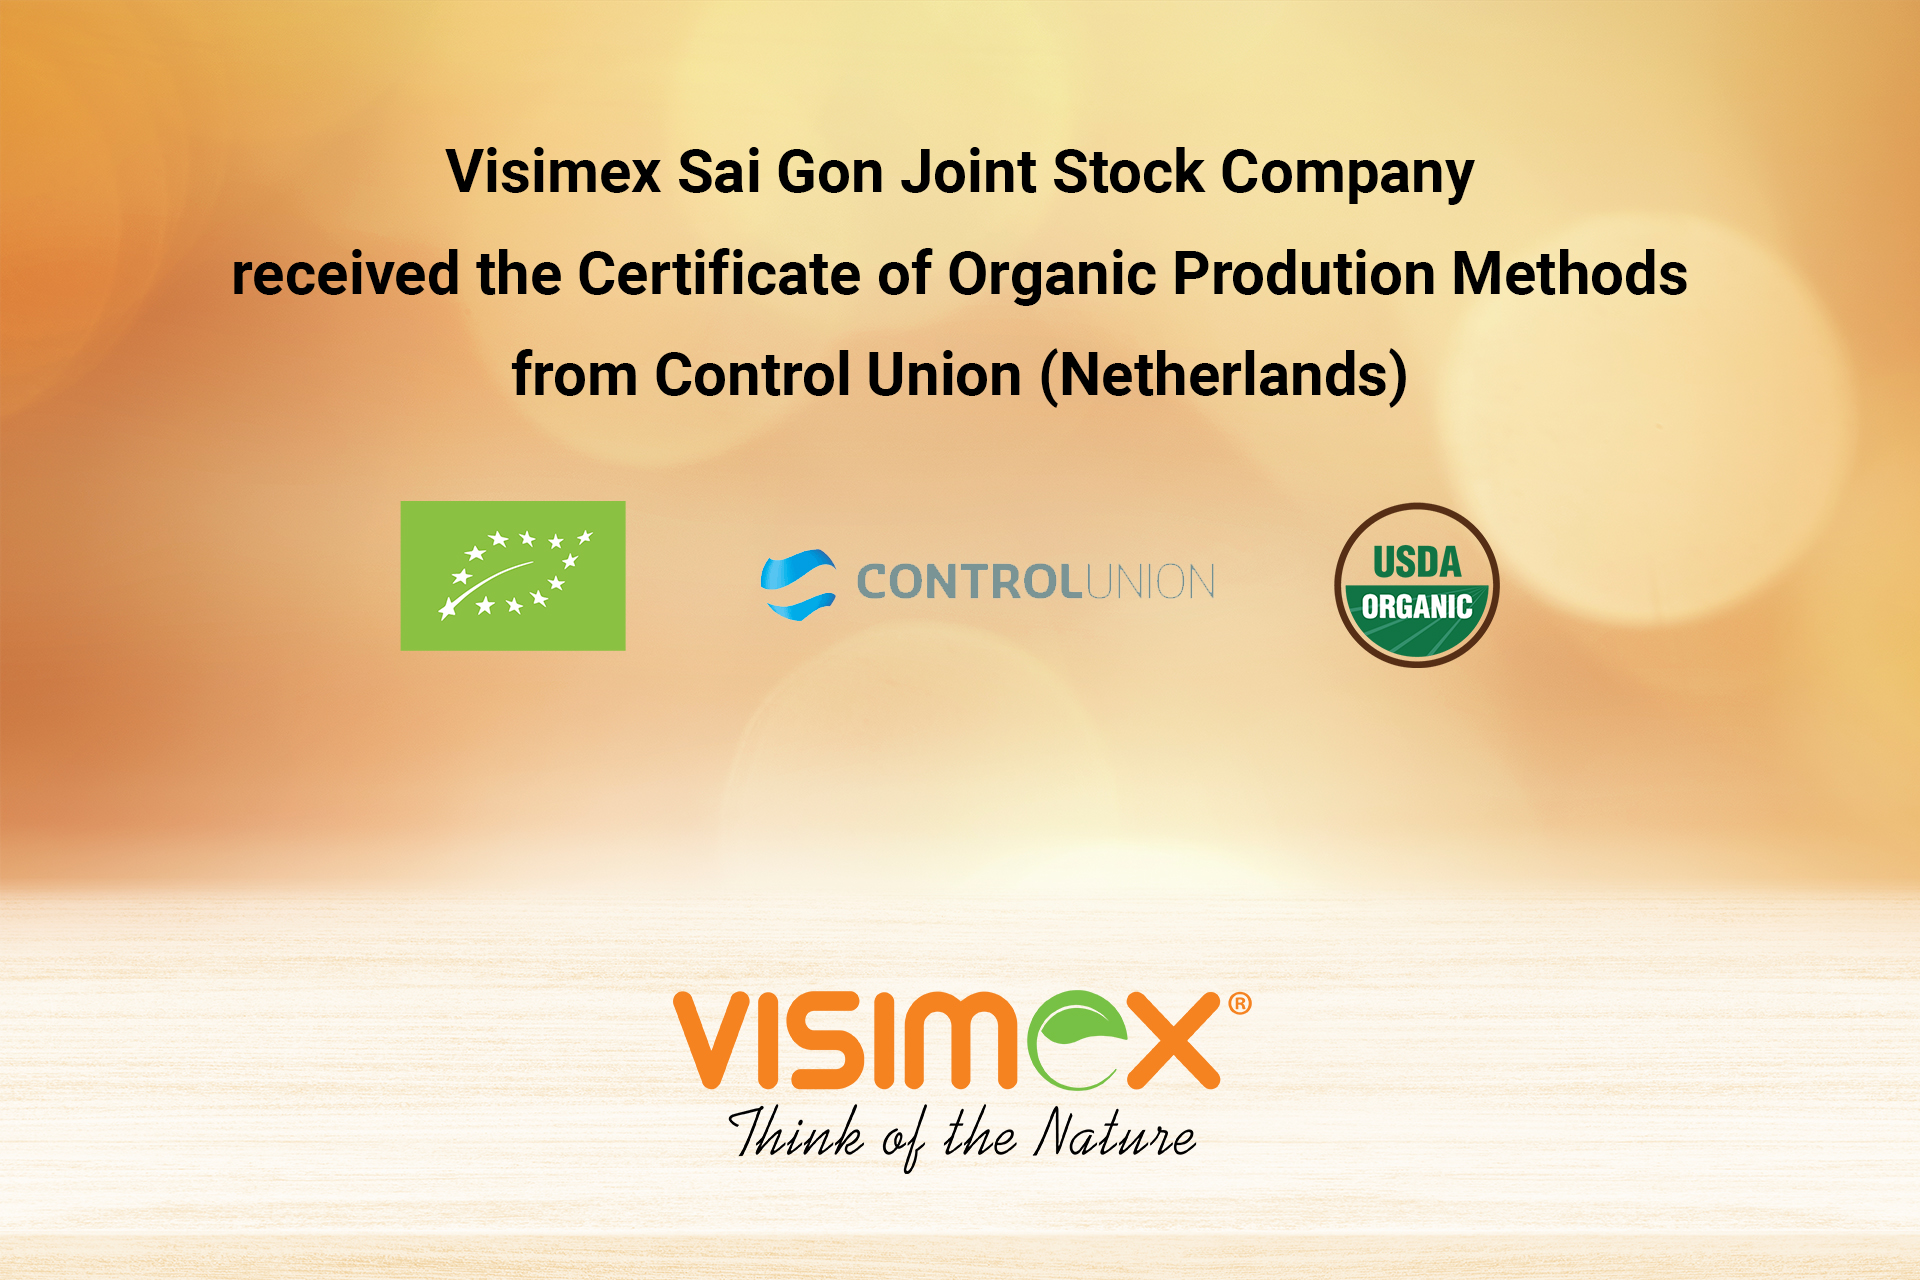 Visimex Sai Gon Joint Stock Company completed the Organic certificate from Control Union